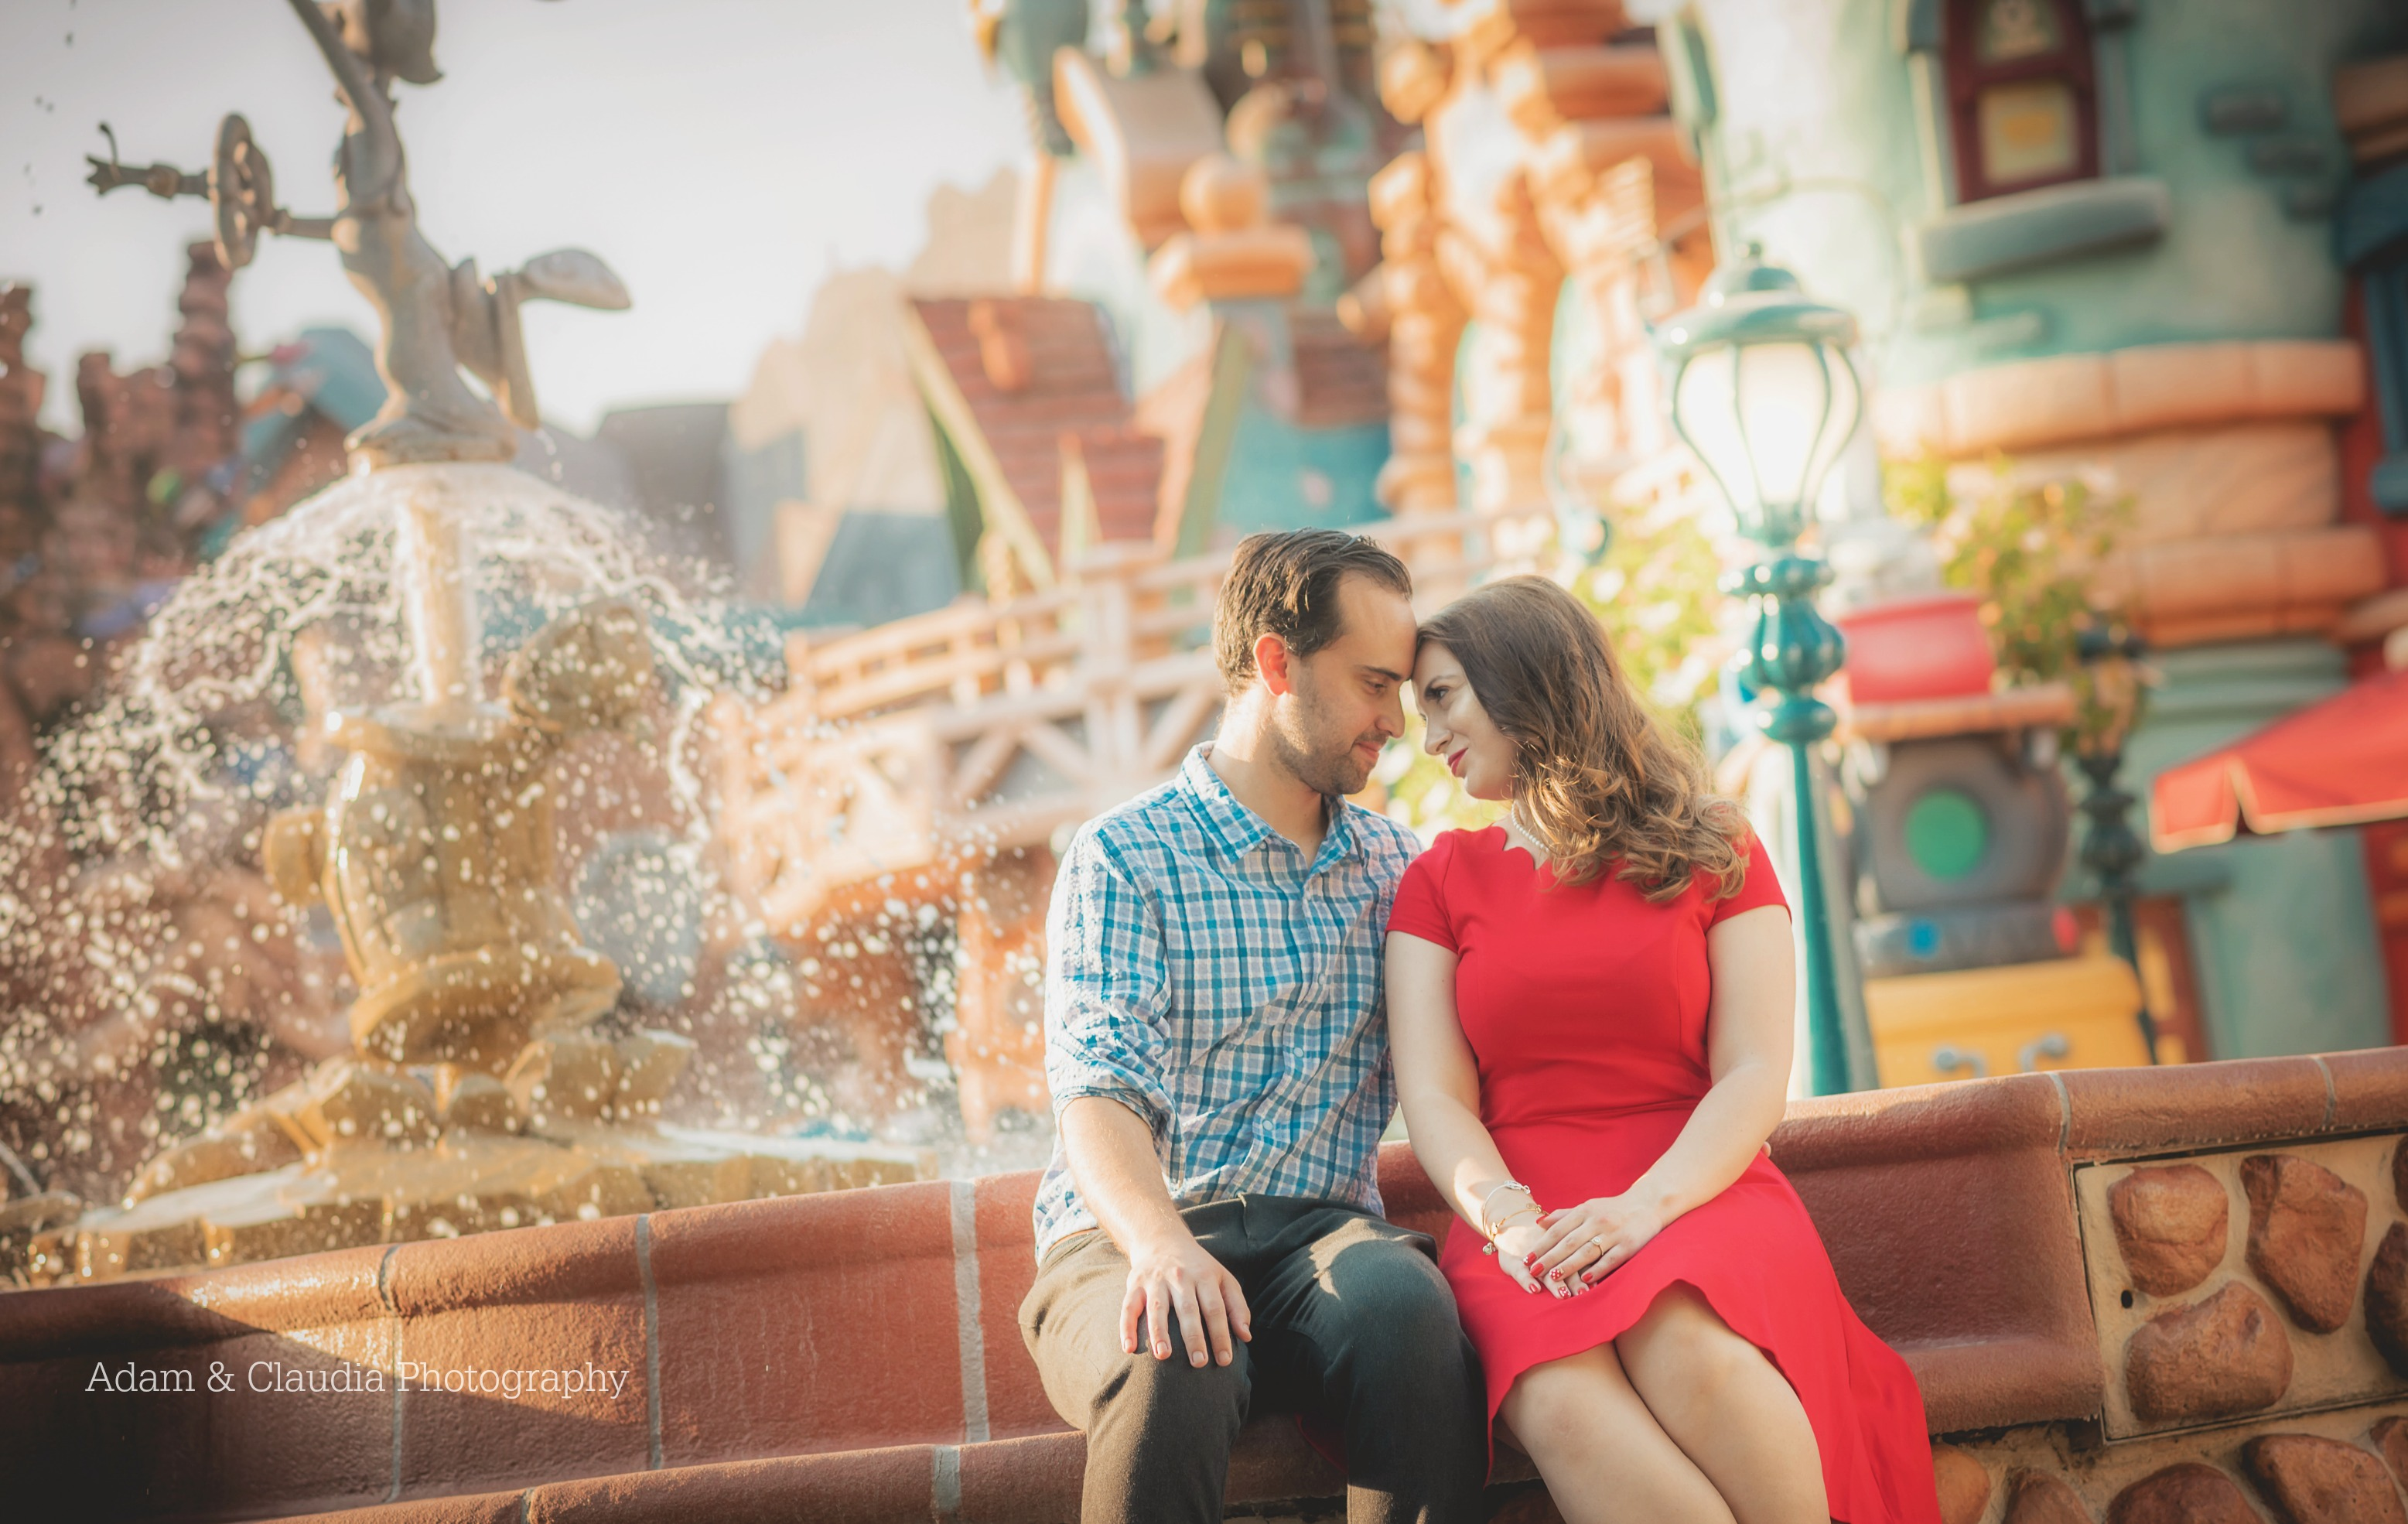 Engagement photo in Toontown